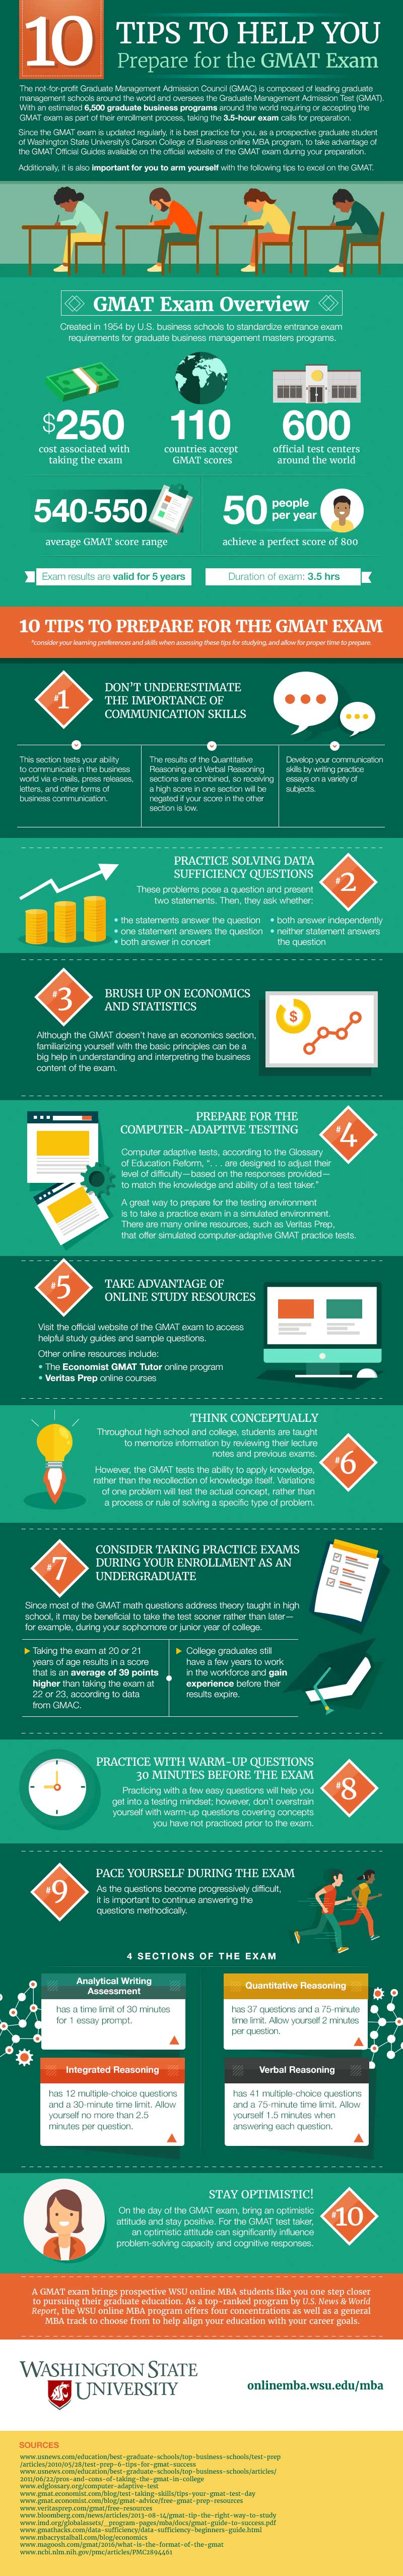 WSUMBA3_10-Tips_to_Prepare_for_the_GMAT_Exam-102417_final